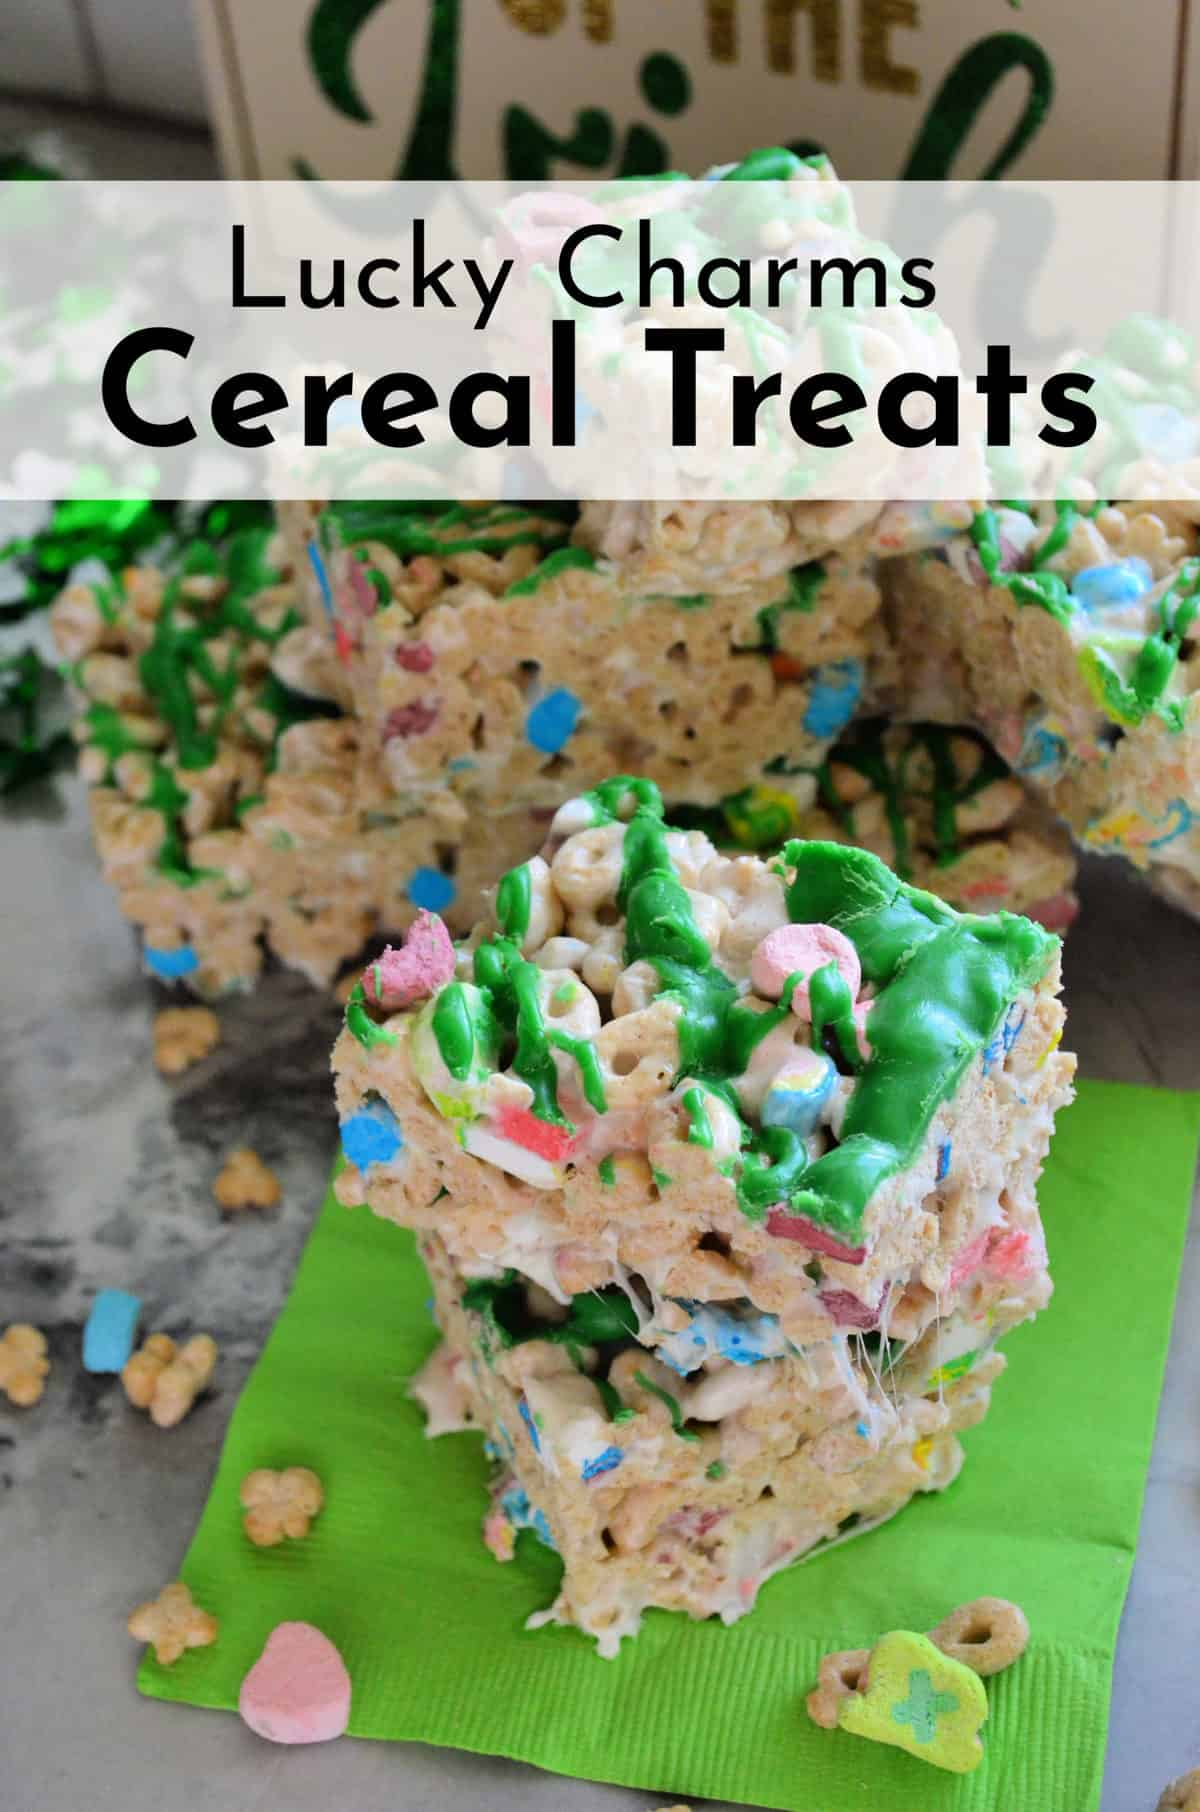 lucky charms cereal treats cut into cubes, drizzled with green chocolate, and stacked with title text.